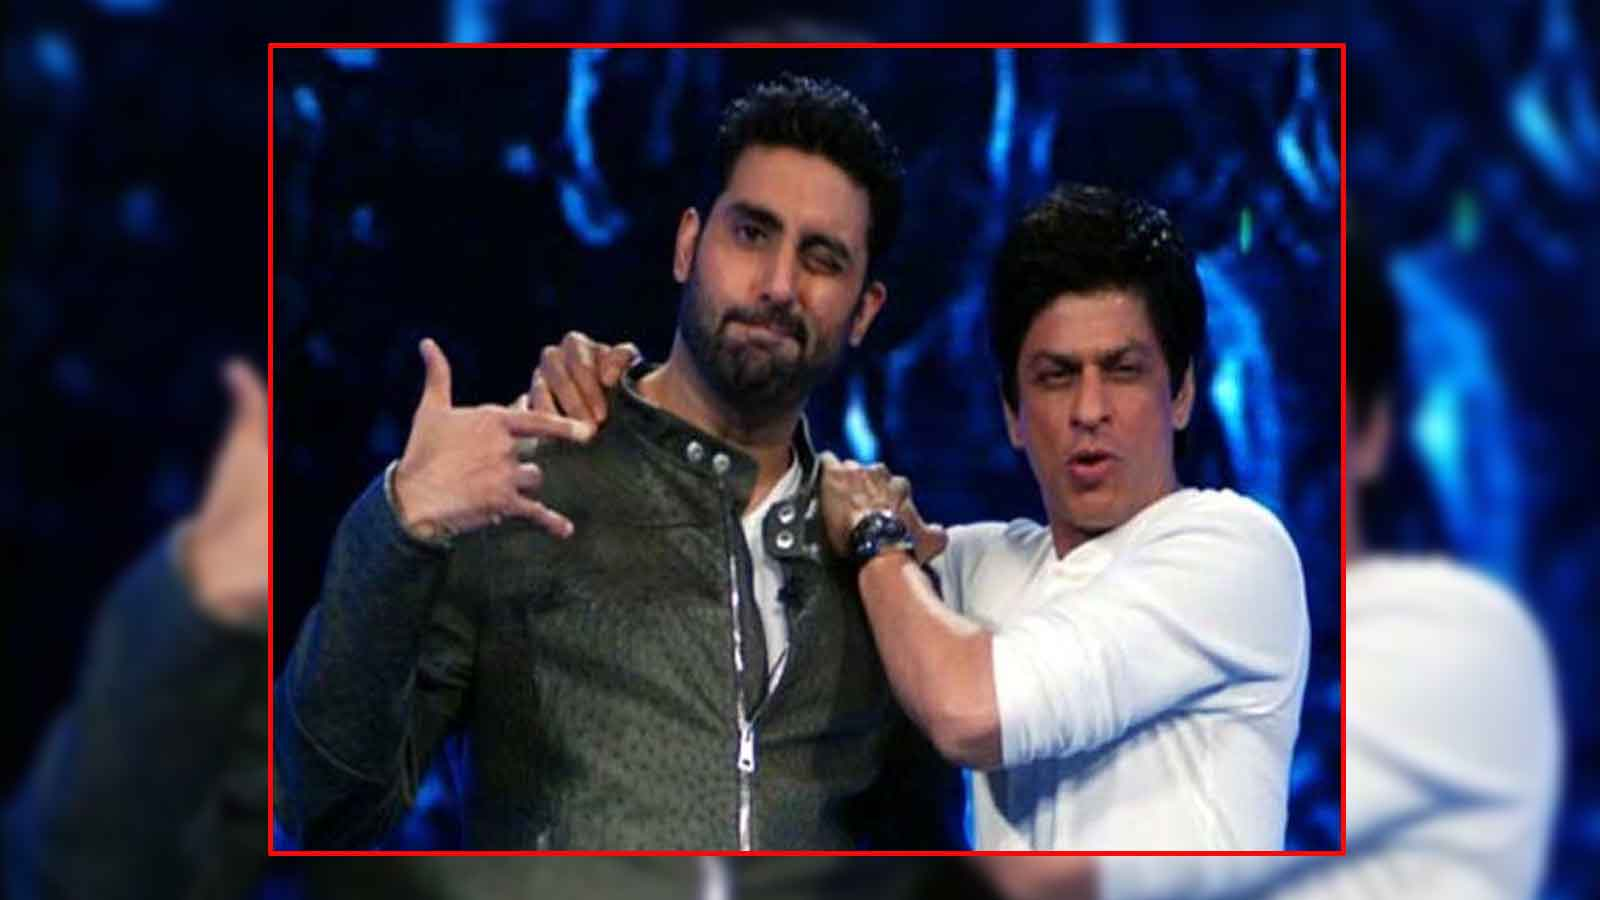 Shah Rukh Khan S Reply To Abhishek Bachchan S Motivational Post Will Leave You In Splits